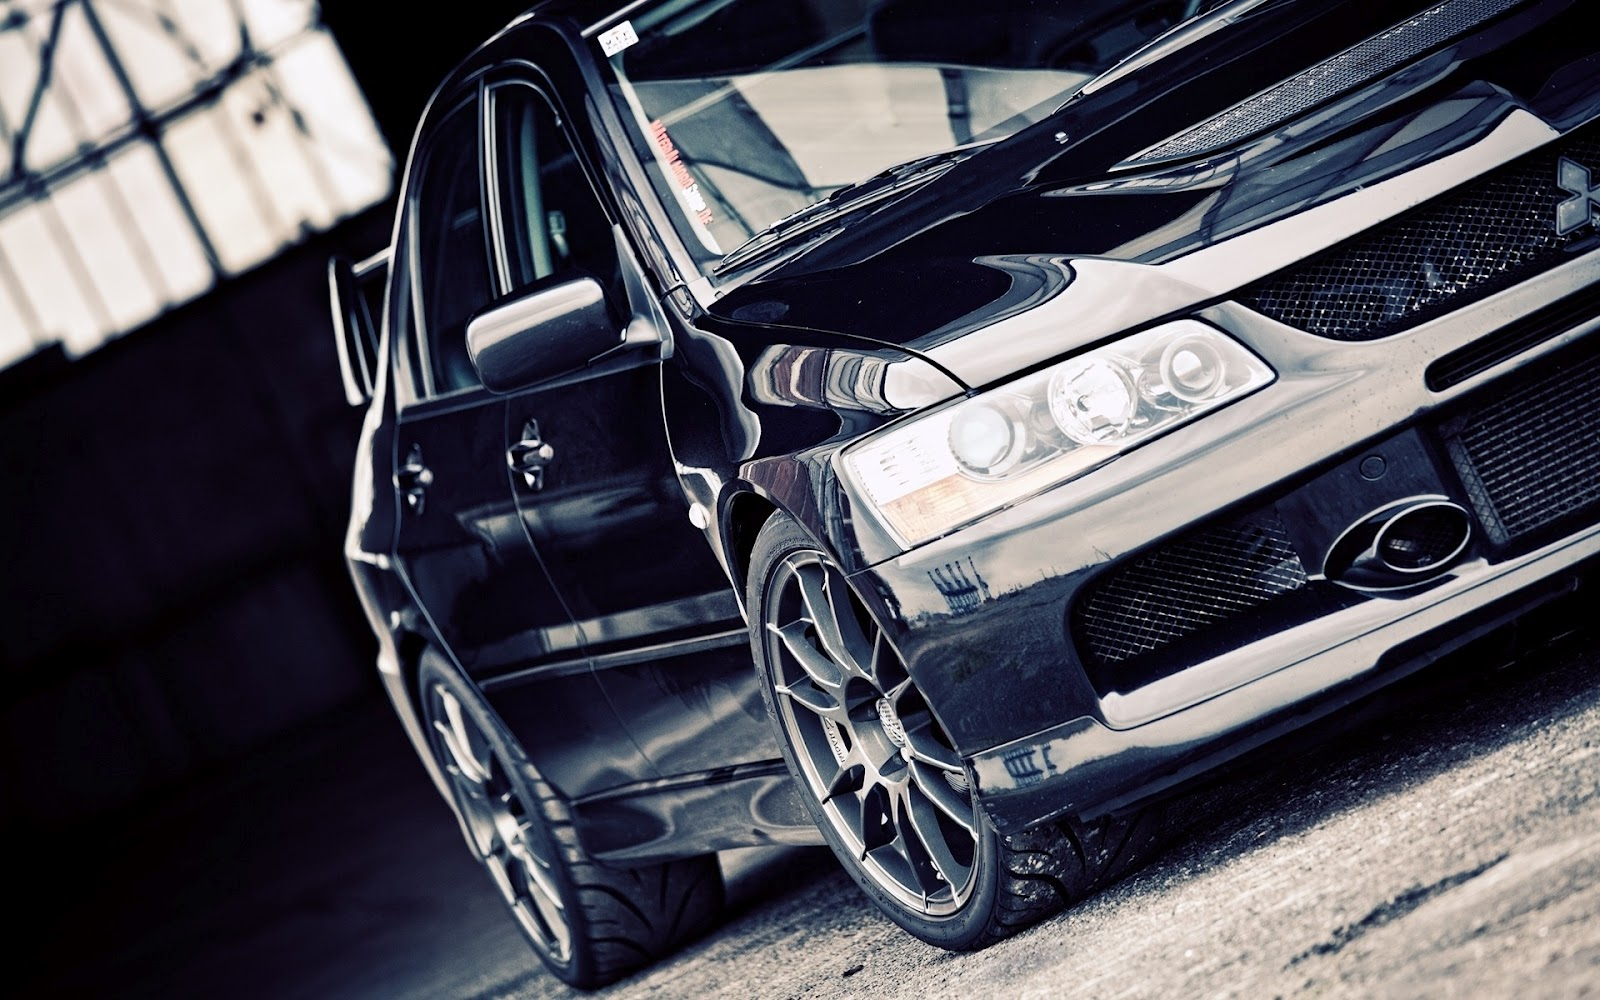 Black Mitsubishi Evolution In Garage Hd Car Wallpapers